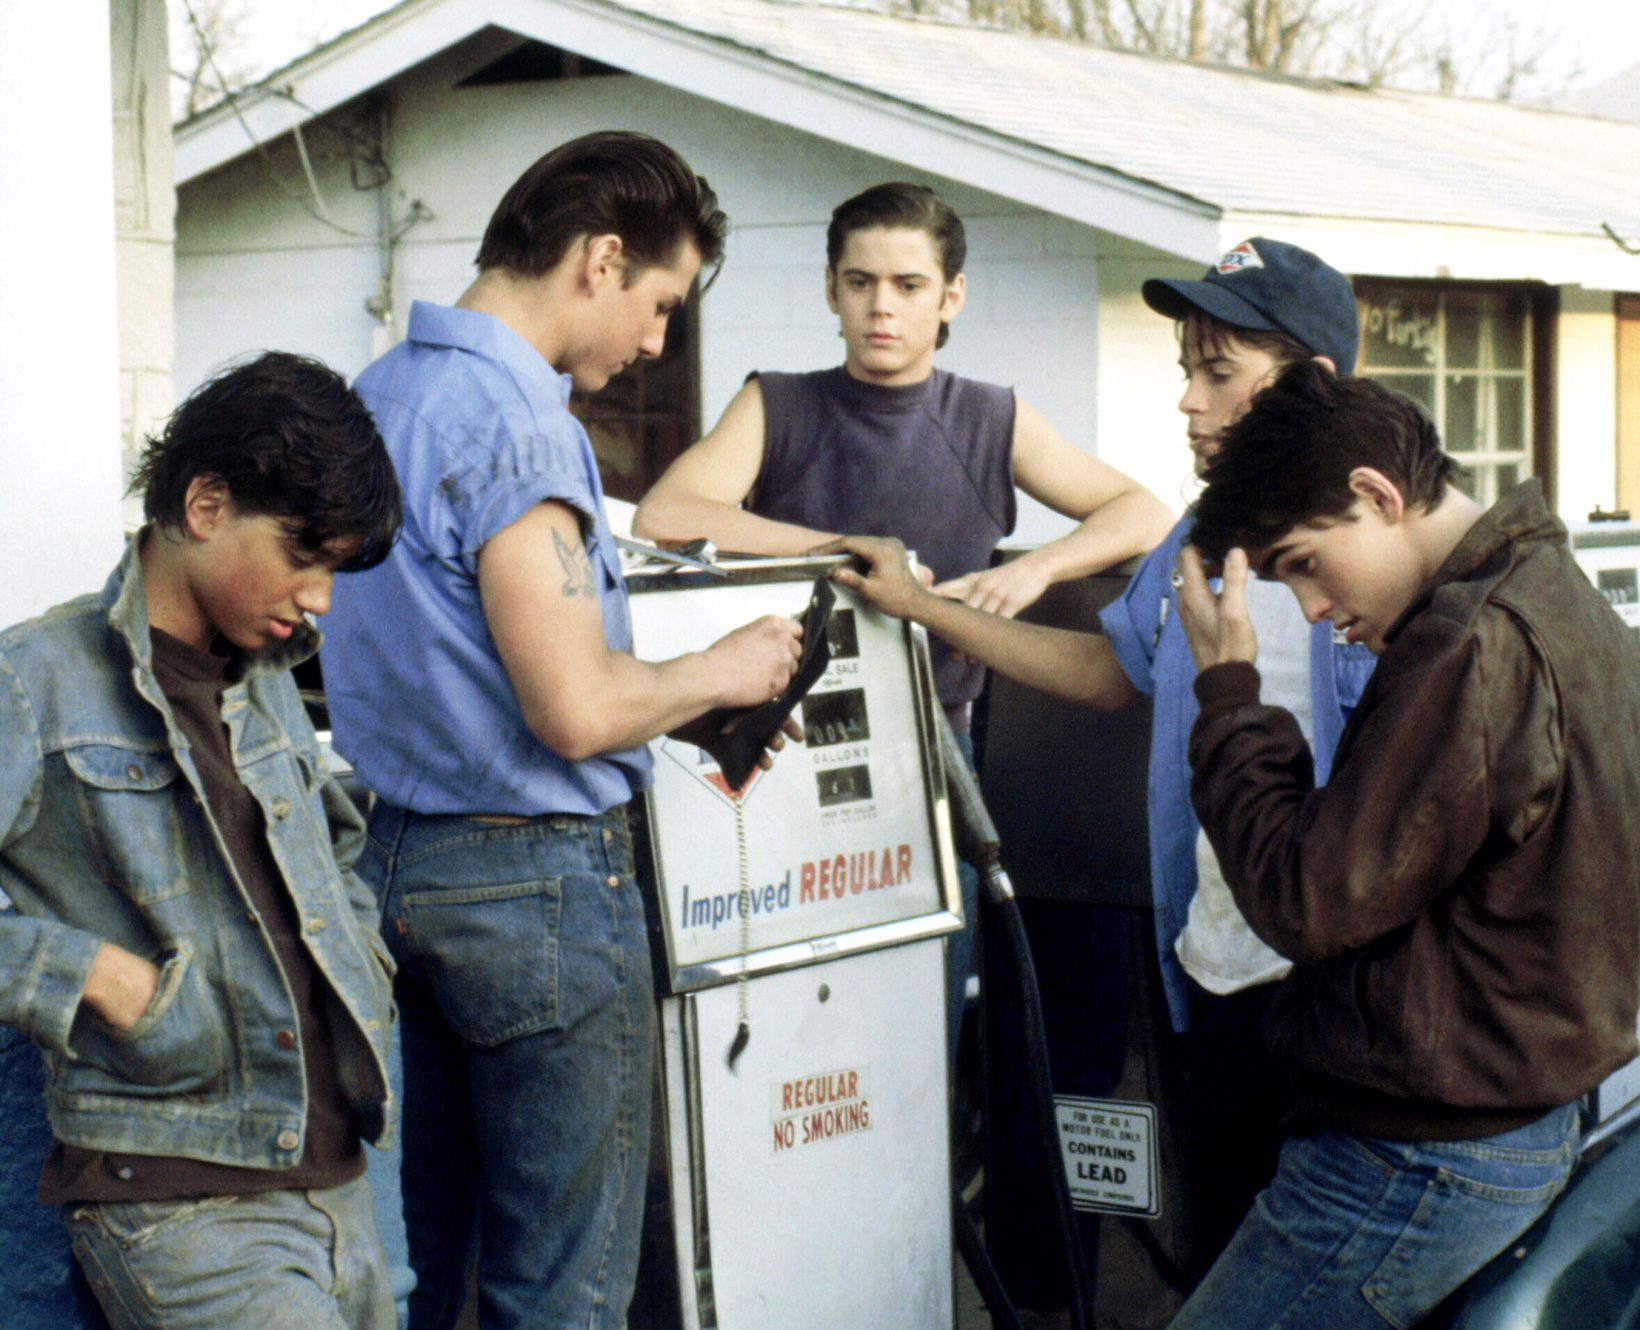 image e1610632859519 20 Things You Probably Didn't Know About The 1983 Film The Outsiders